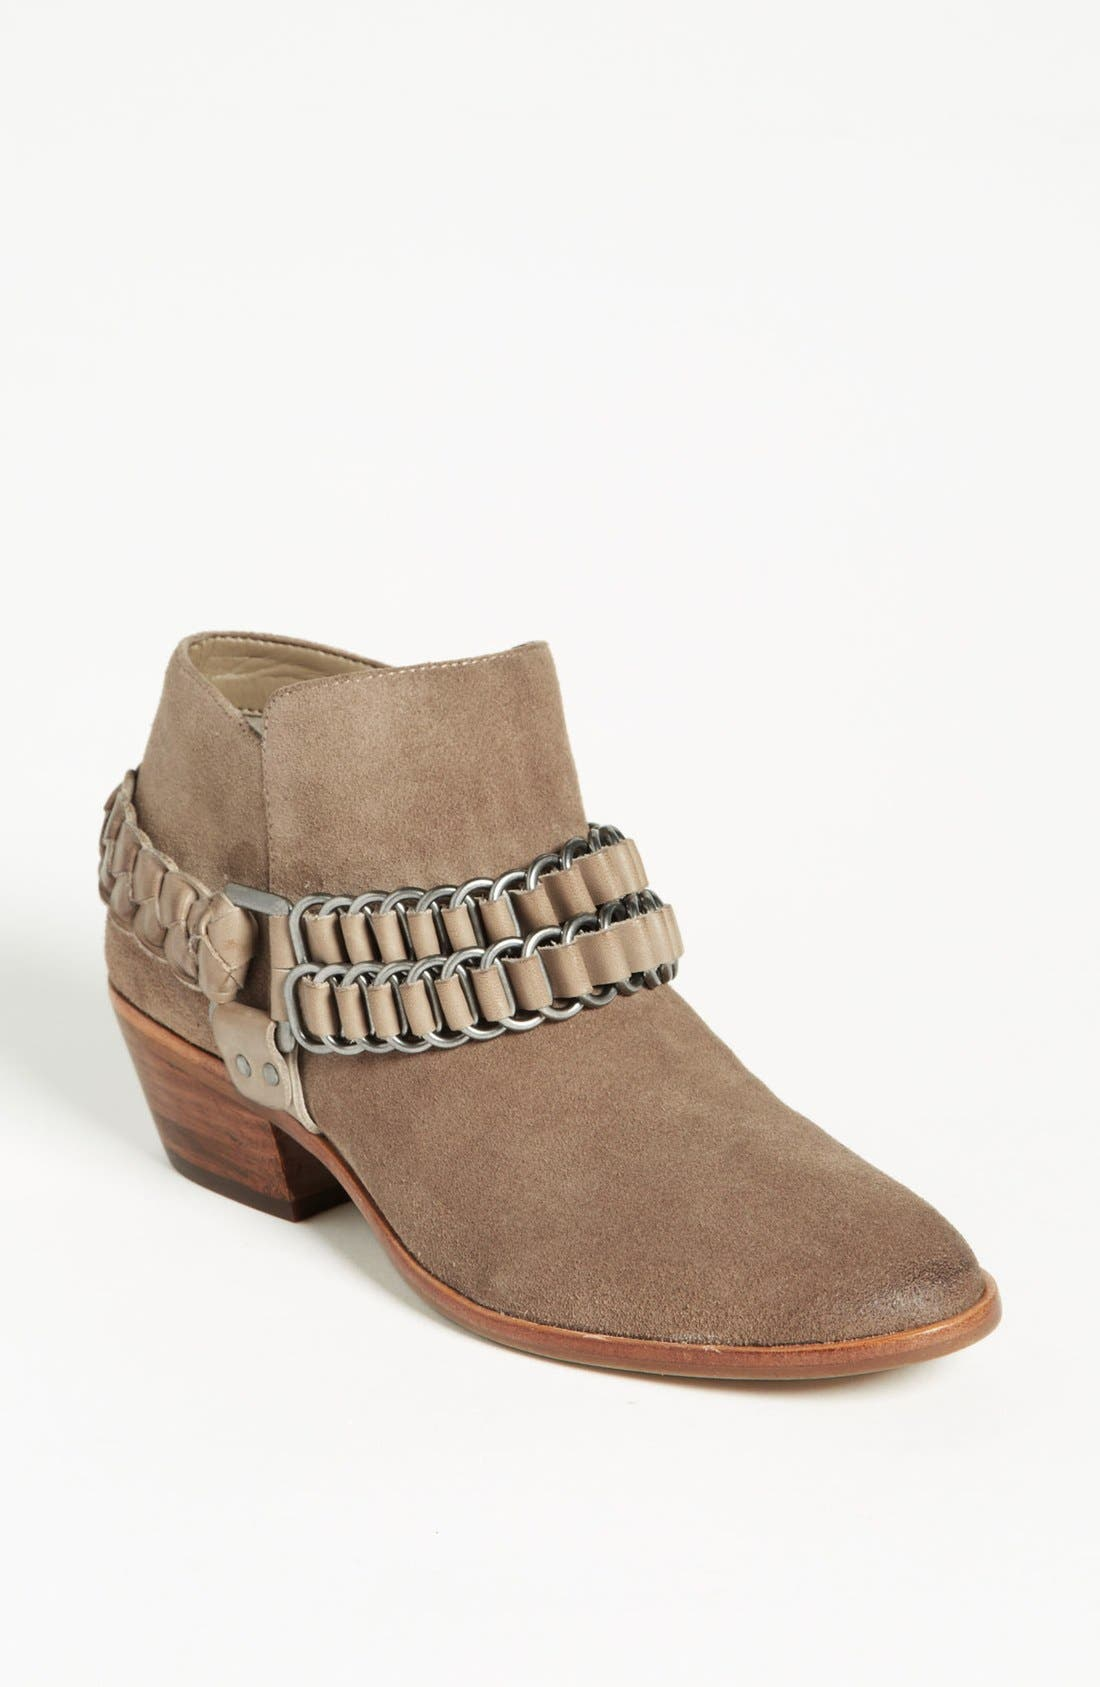 Alternate Image 1 Selected - Sam Edelman 'Posey' Bootie